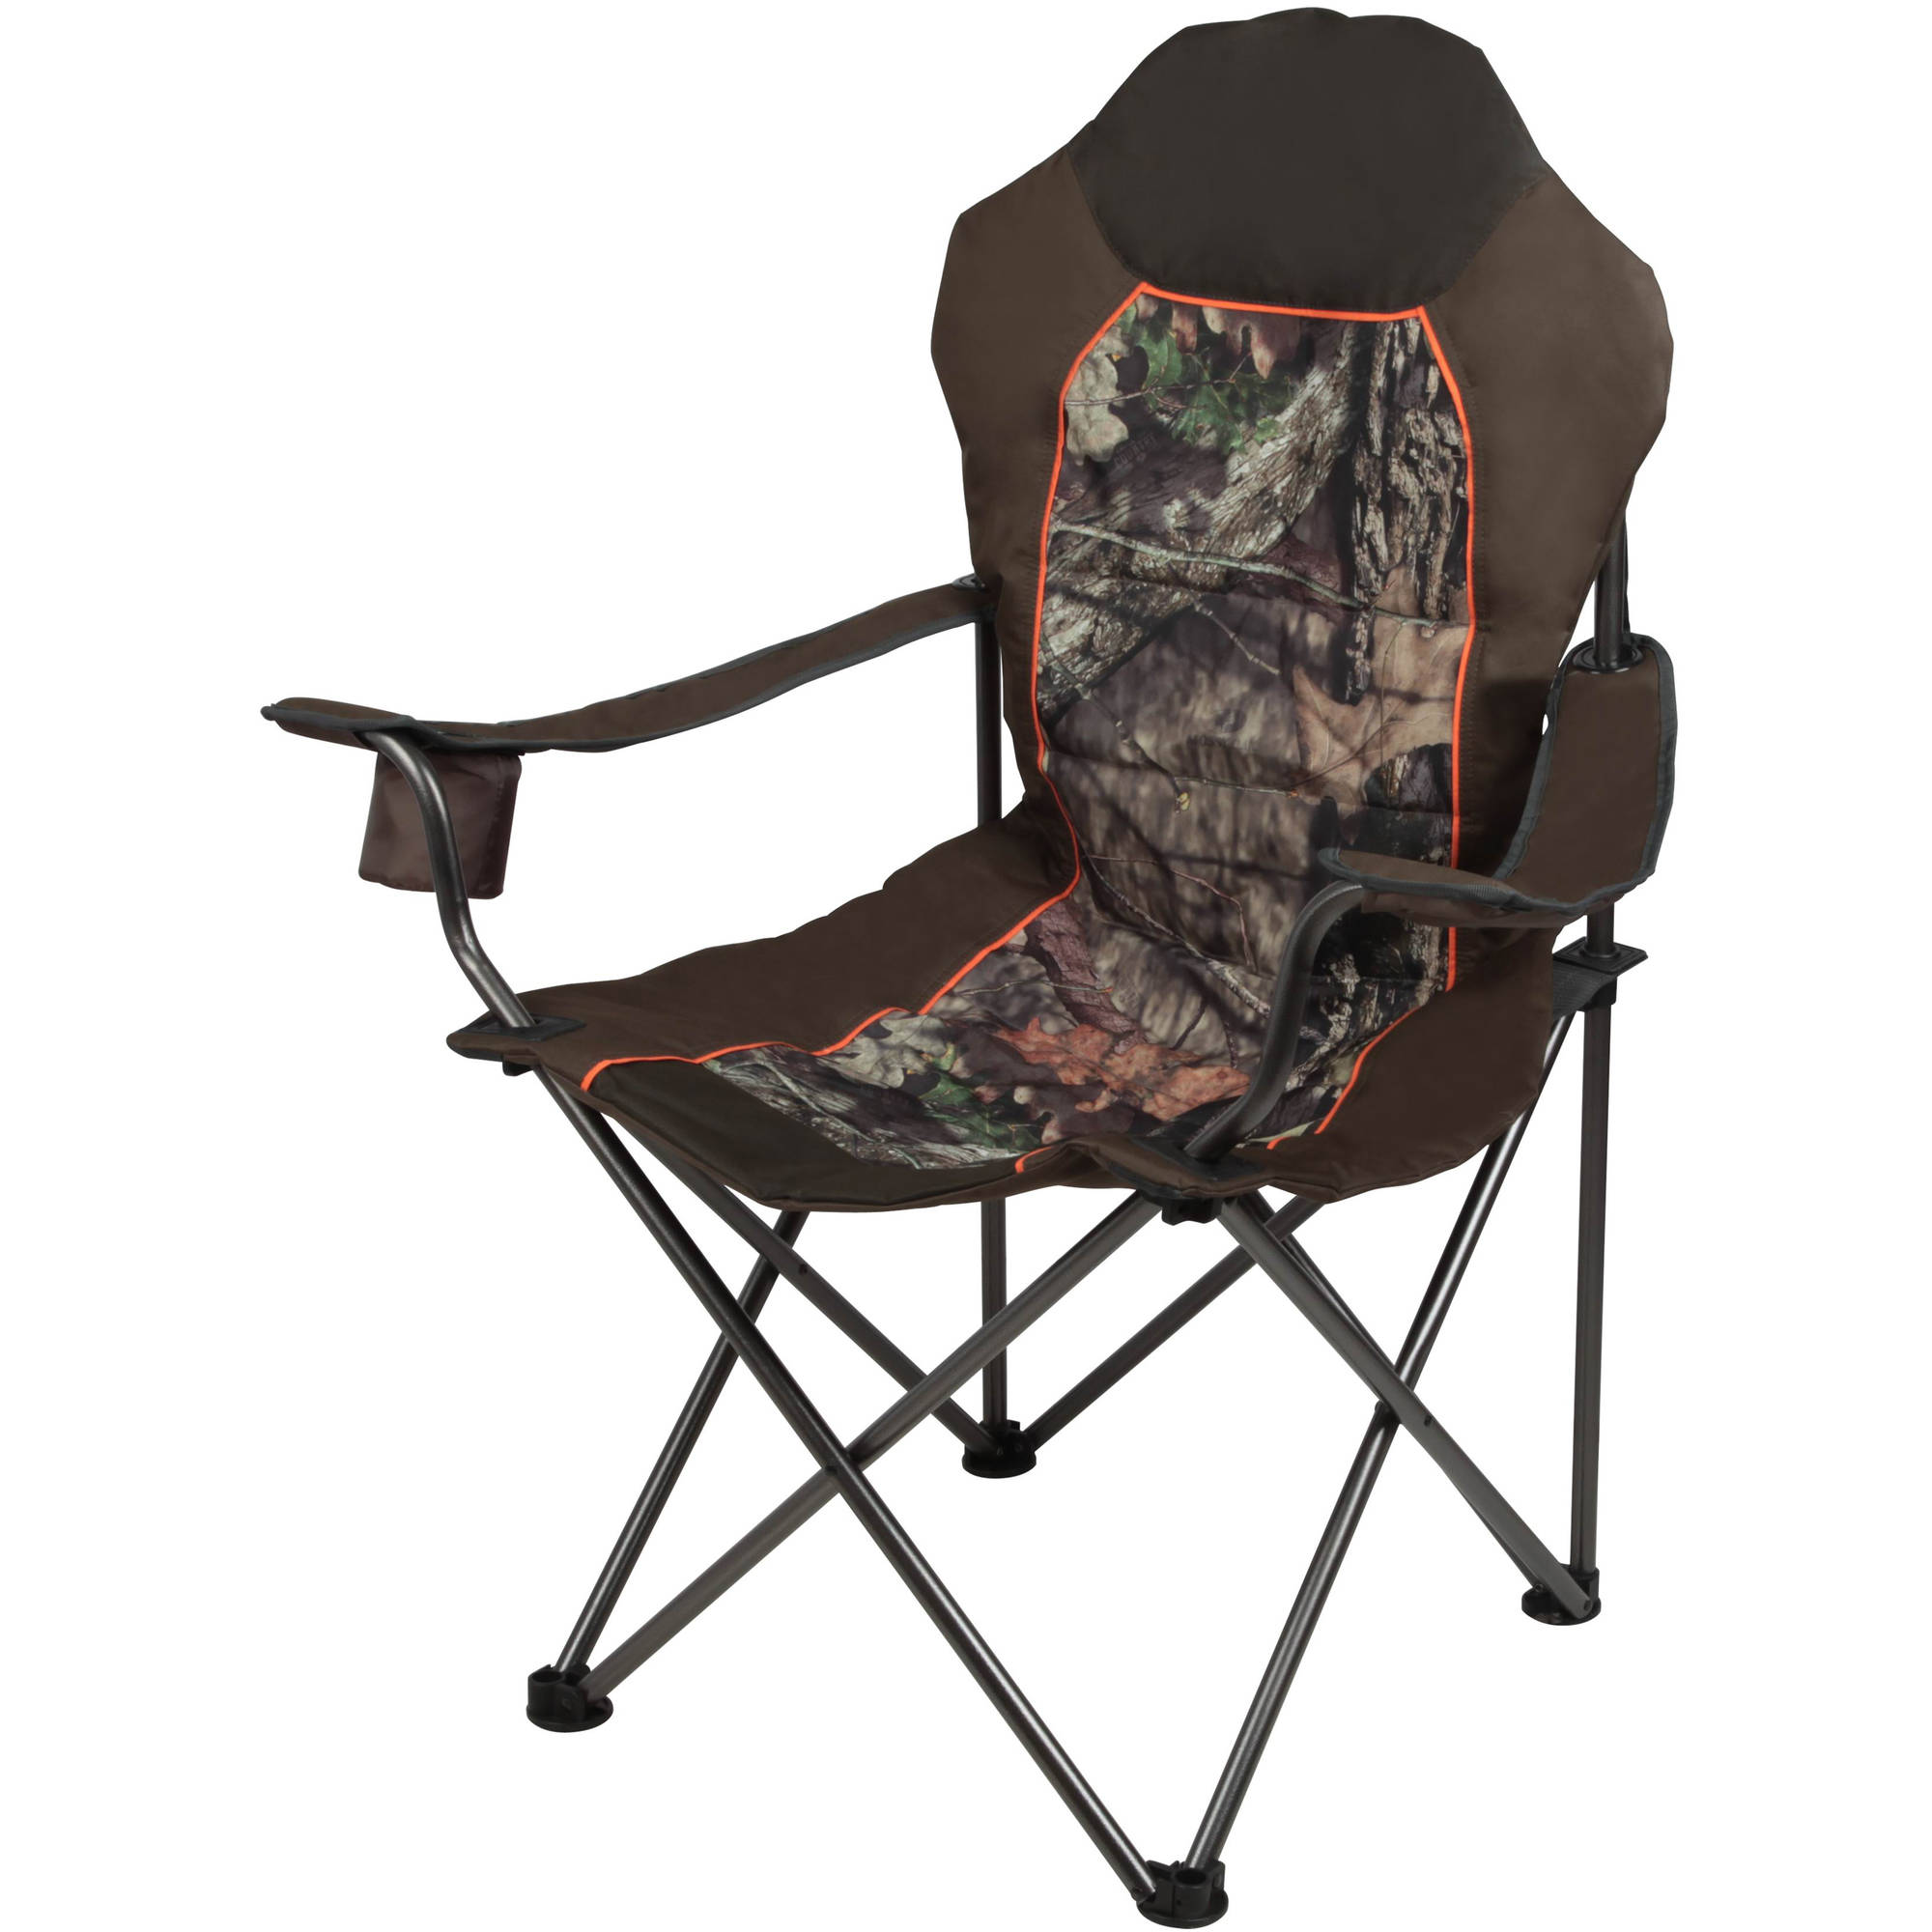 Mossy Oak Outfitter Deluxe Chair, Green